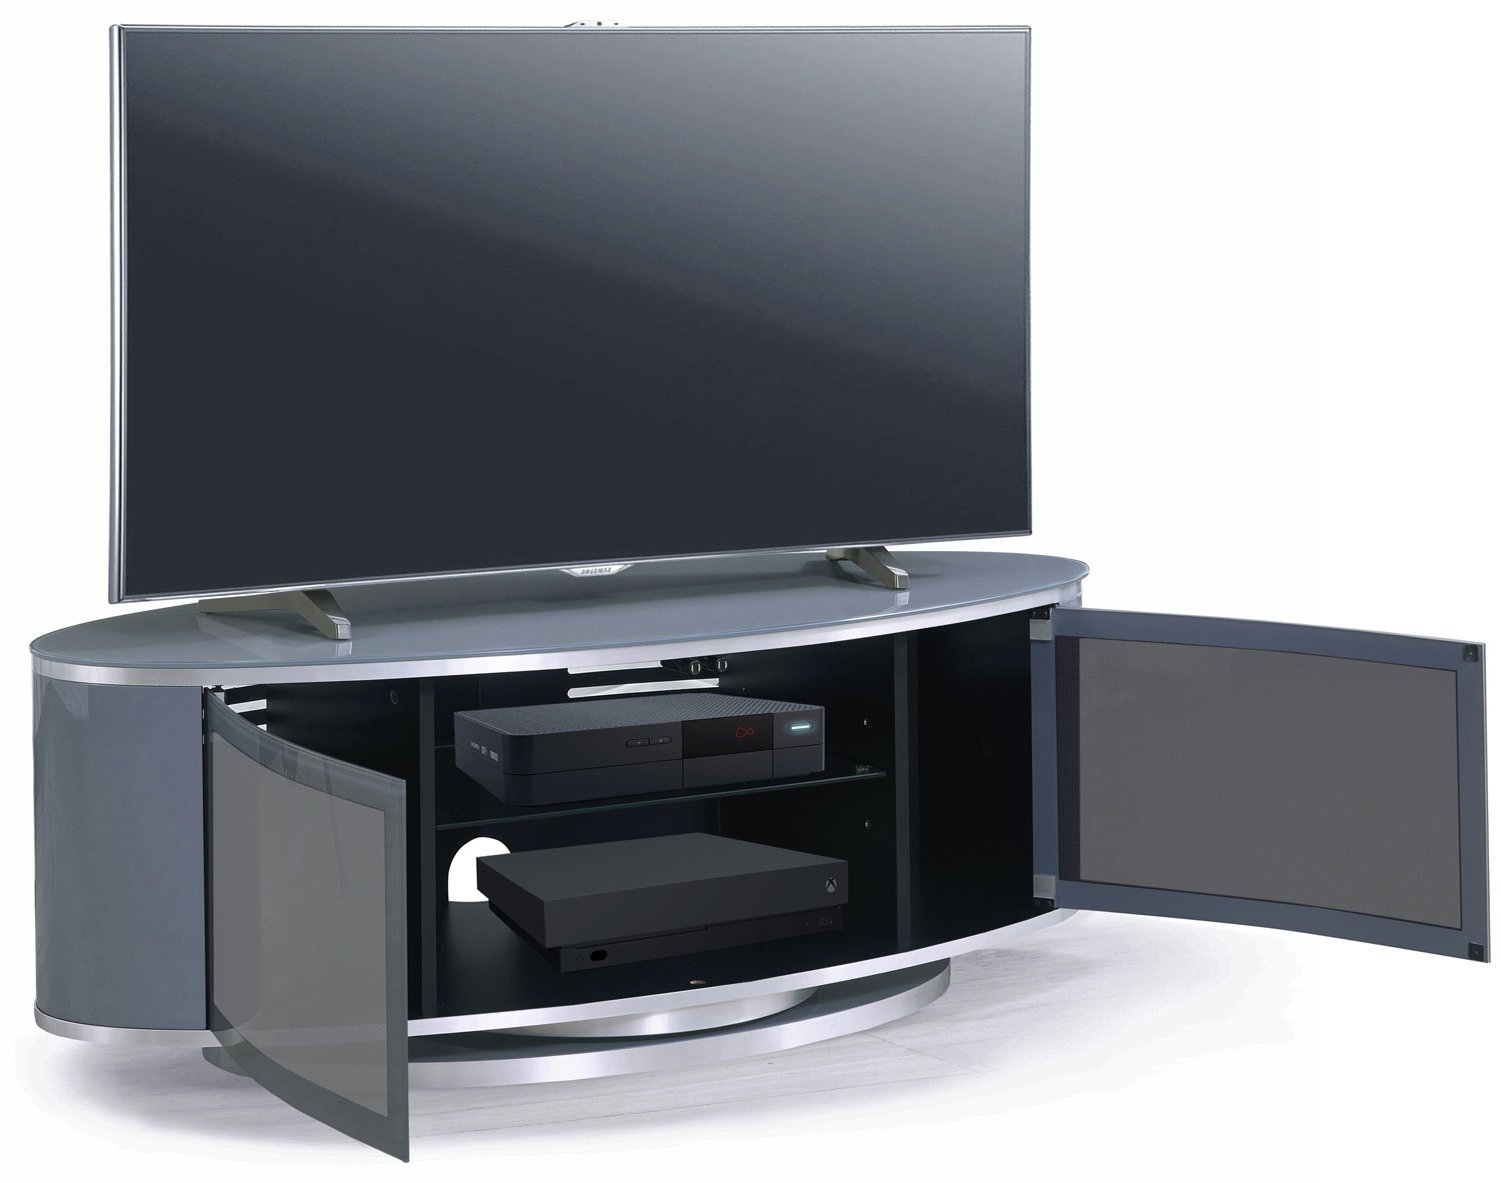 Mda Luna High Gloss Slate Grey Oval Tv Cabinet For Tvs Up With Oval Tv Unit (View 7 of 15)